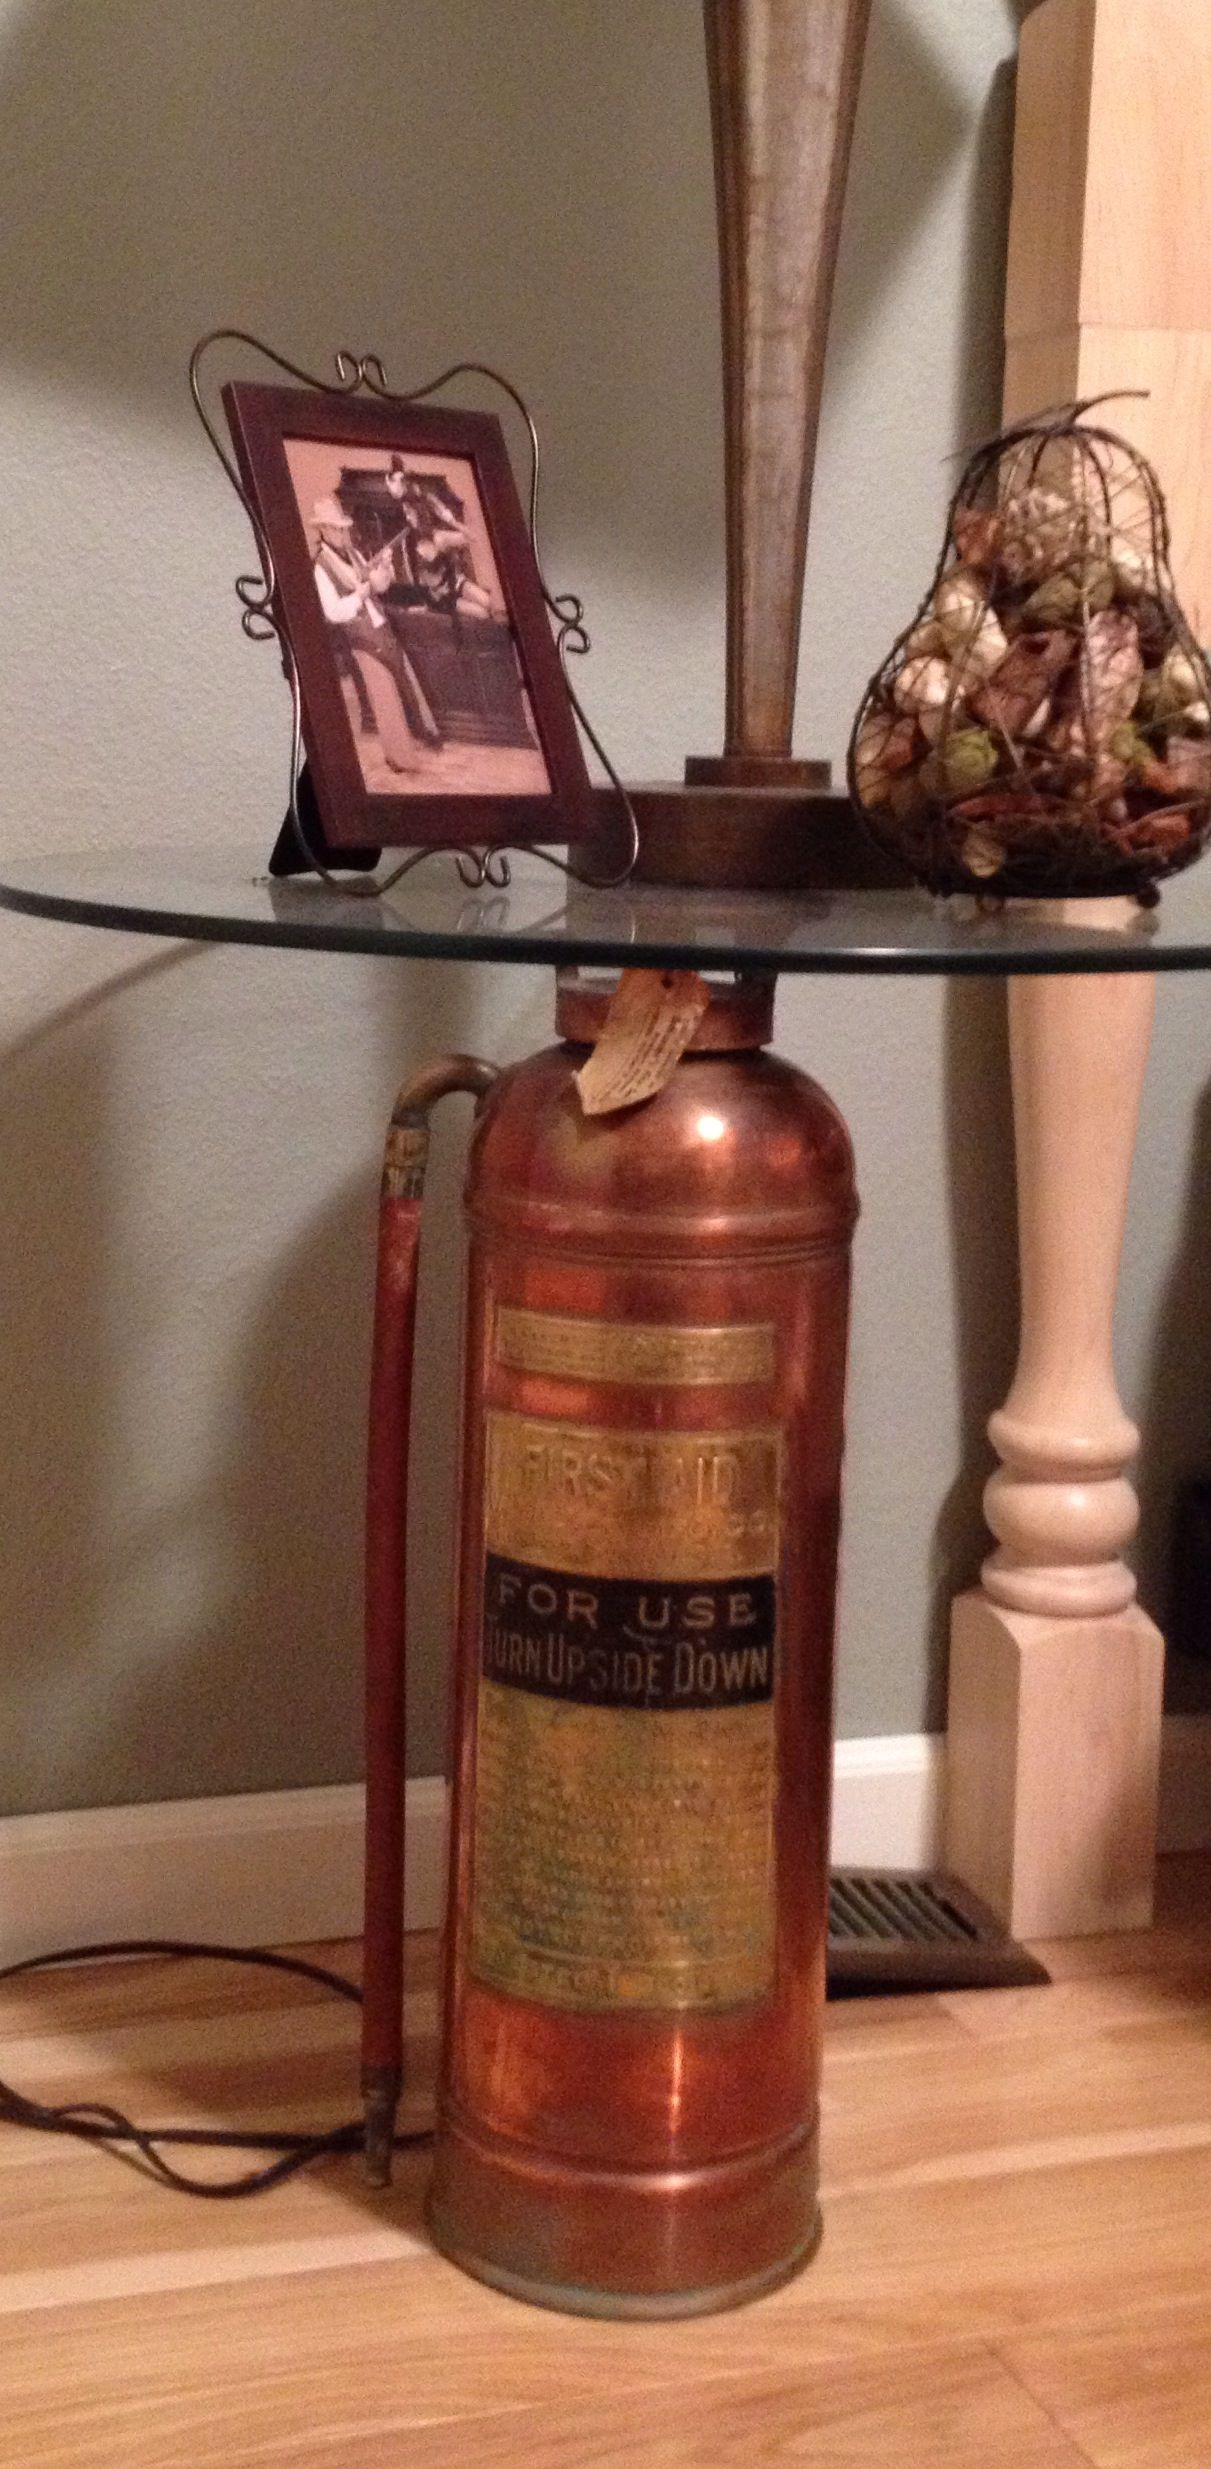 Firefighter Living Room Decor: A Great Idea For A Side Table. Take A 1920s Solid Copper